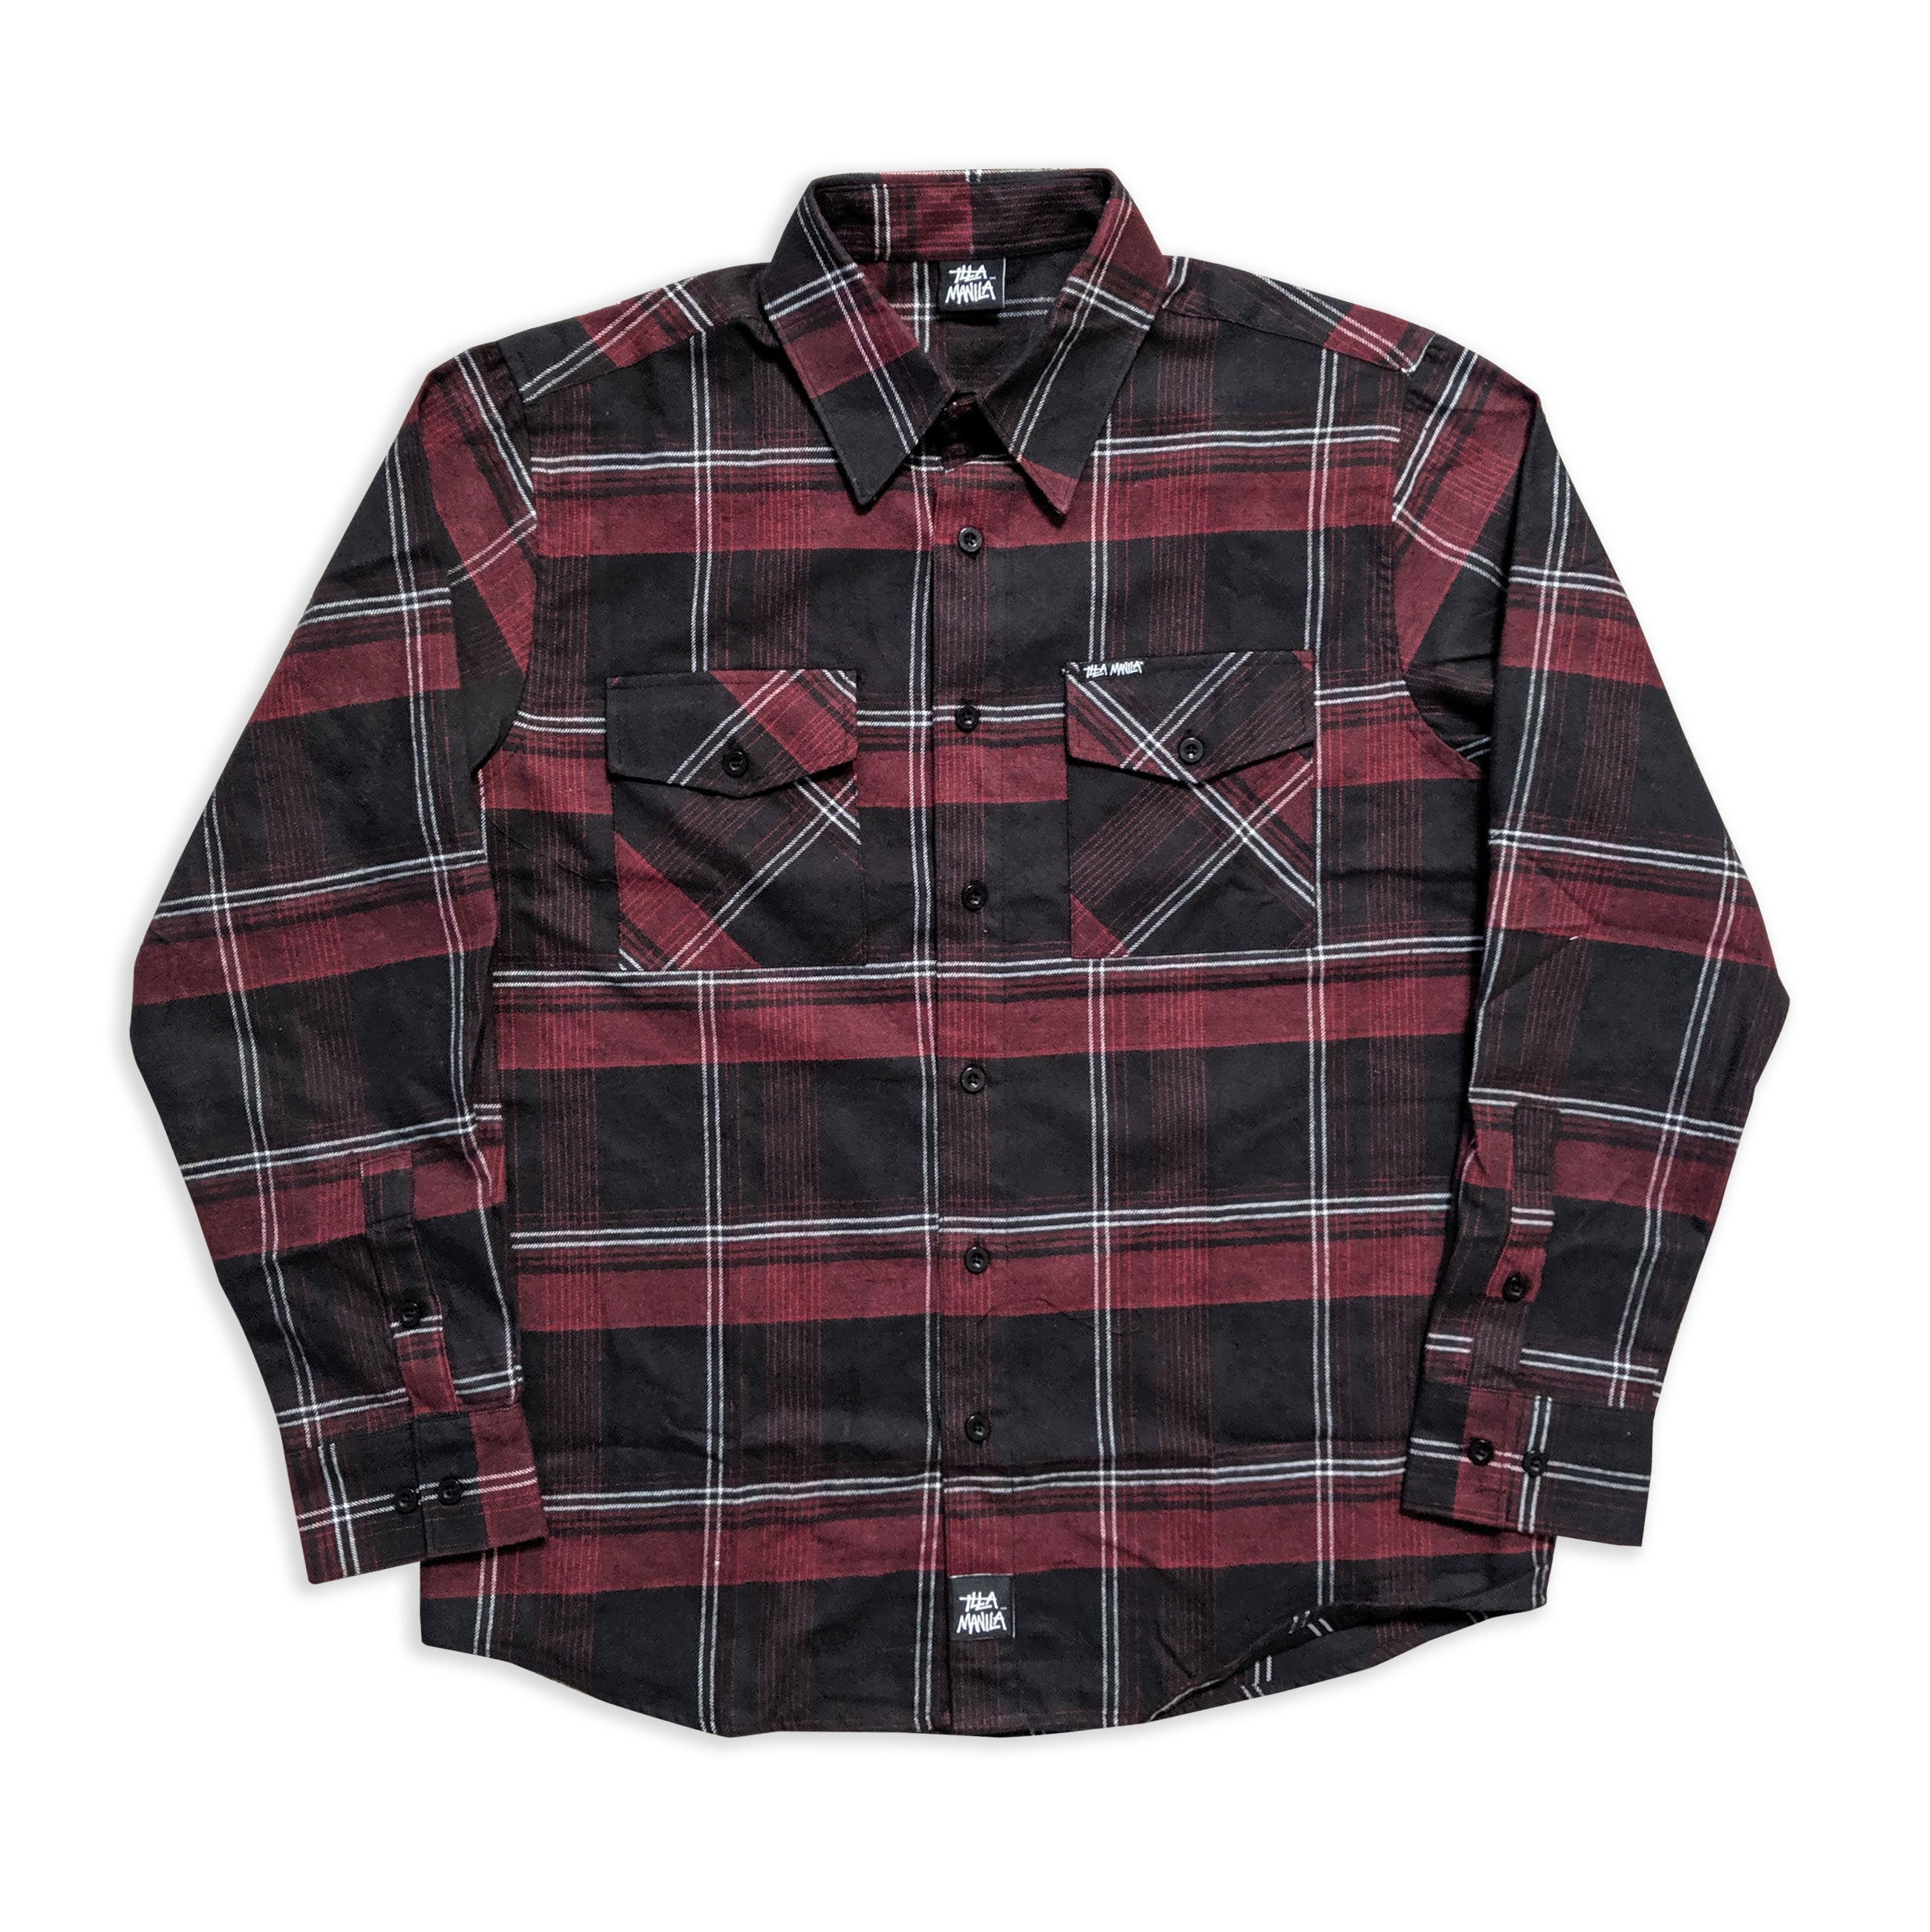 The Watchman Flannel